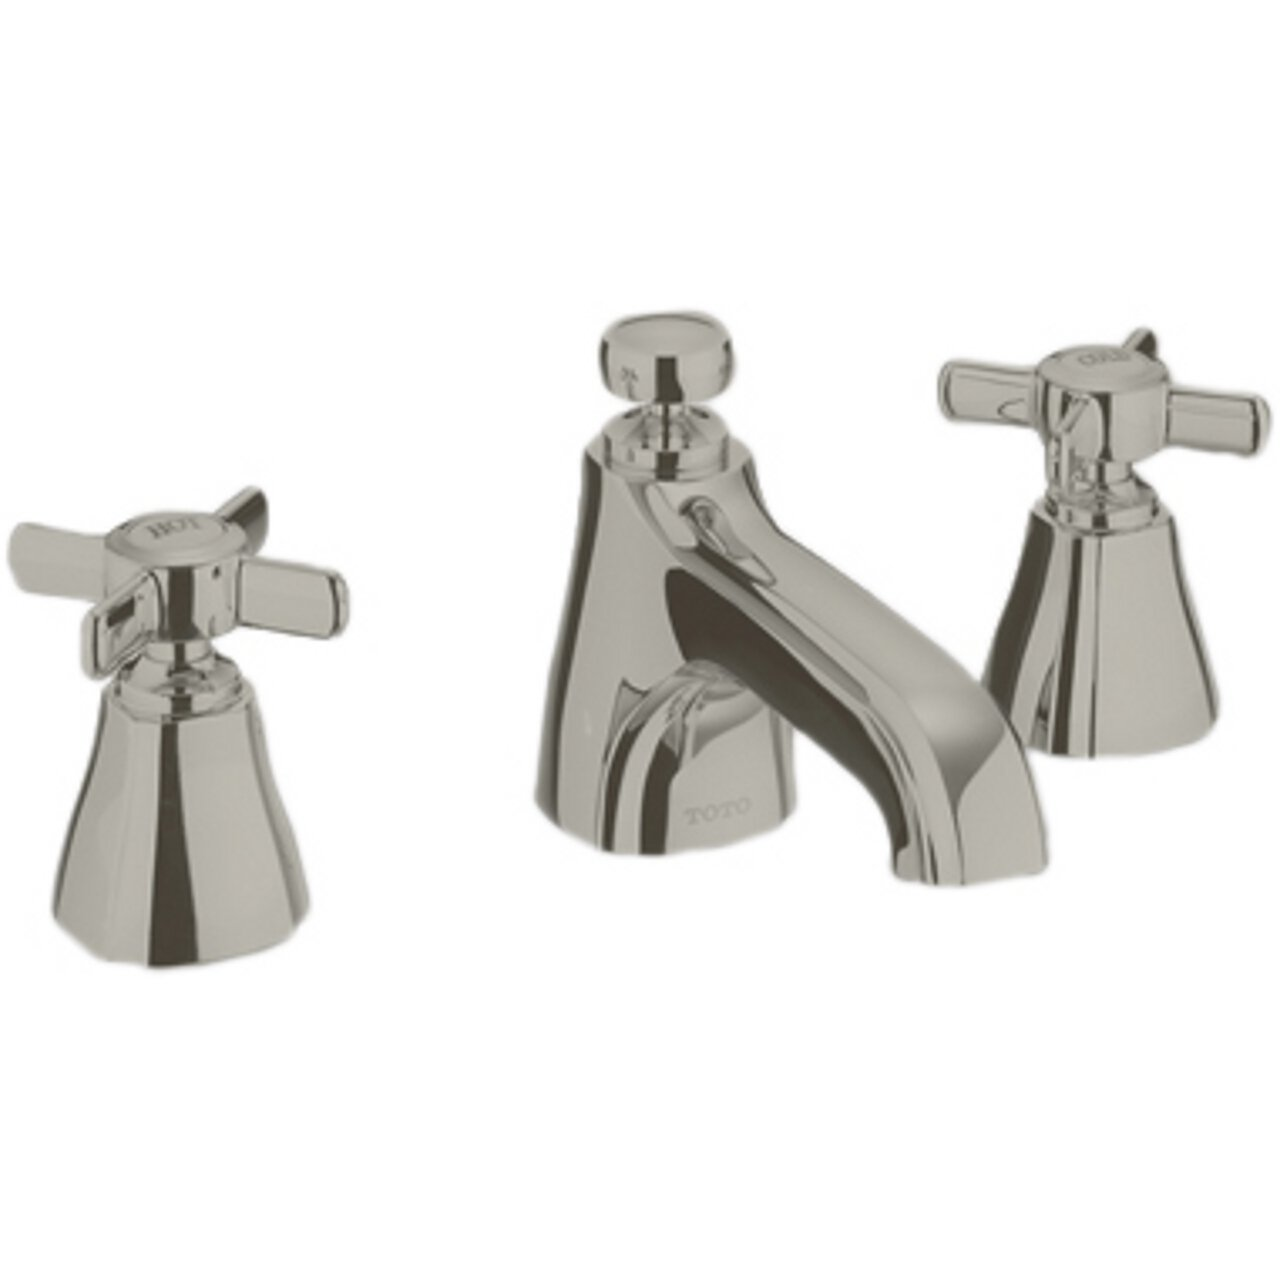 Toto TL970DDLQ#BN 1.5 GPM Guinevere Widespread Lavatory Faucet, Brushed Nickel